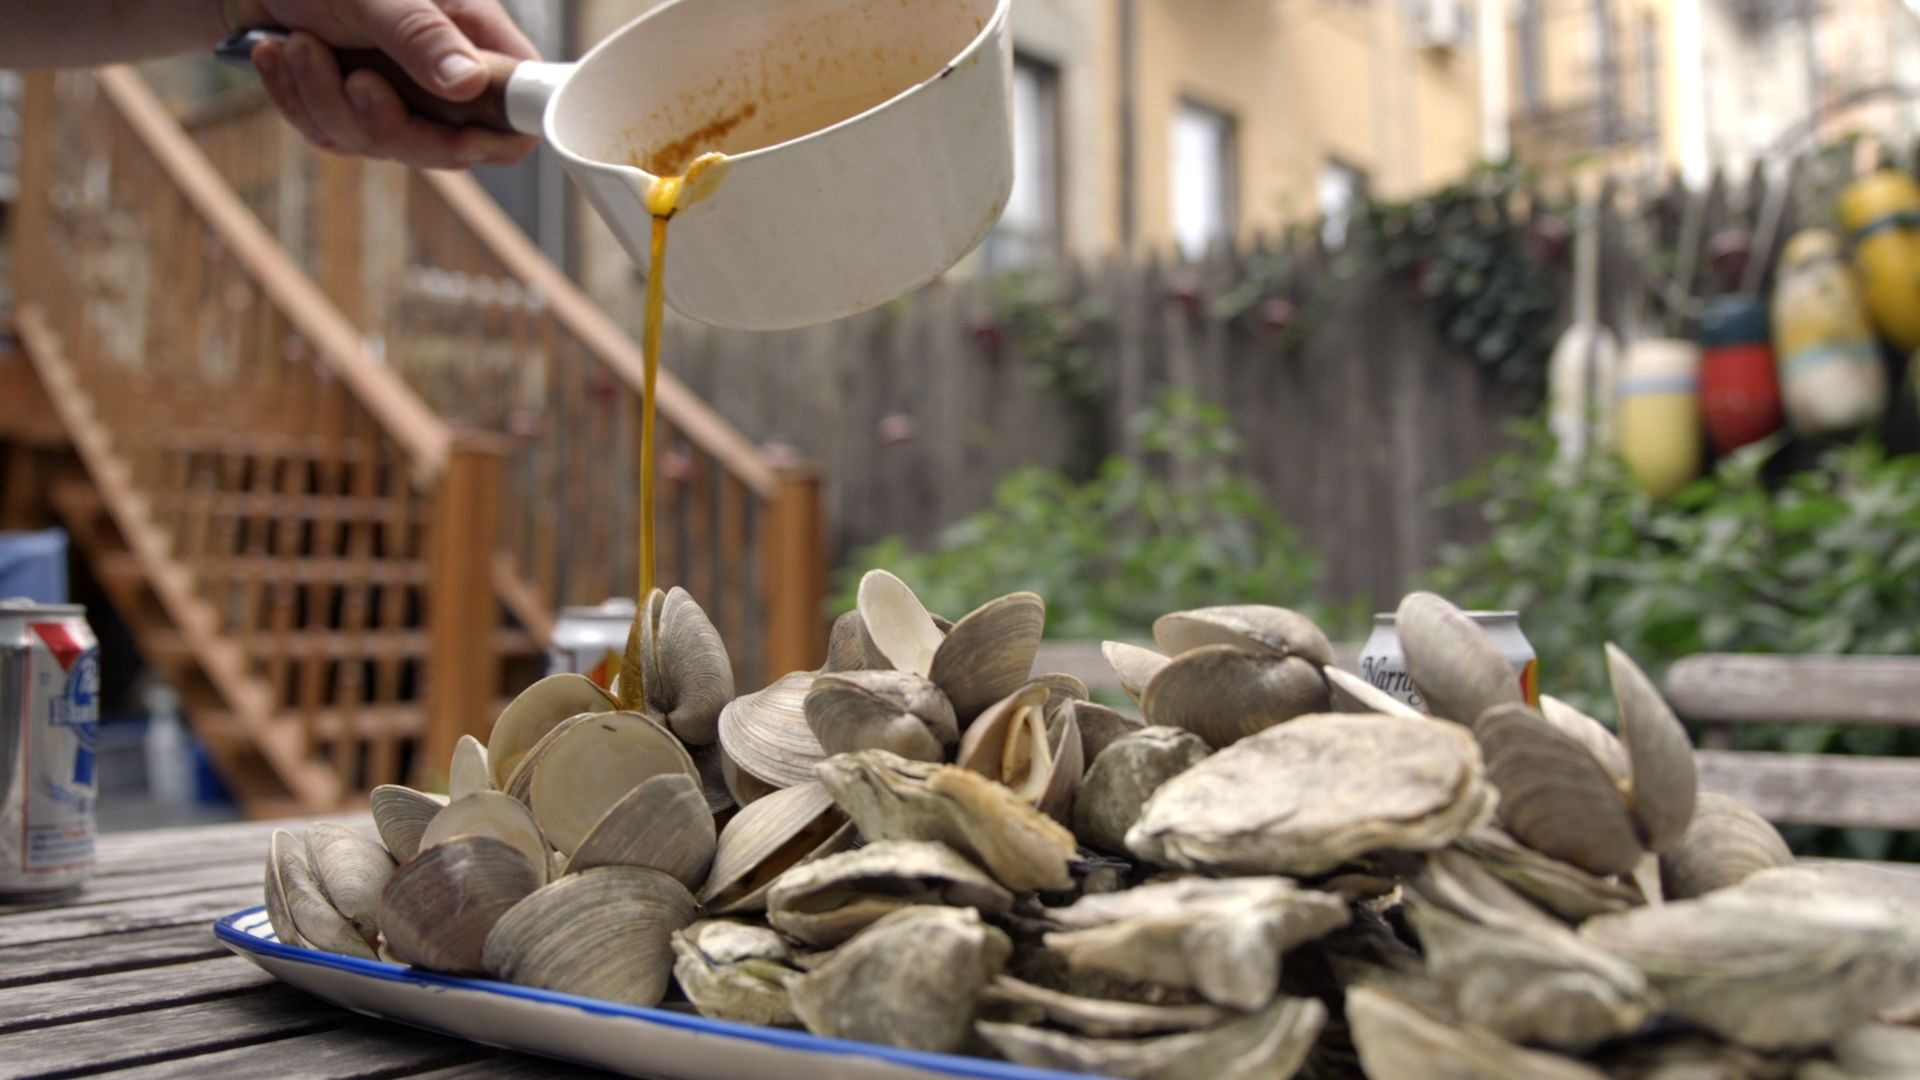 GQ's Guide to the Perfect Seafood BBQ: Oysters and Clams with Garlic Butter